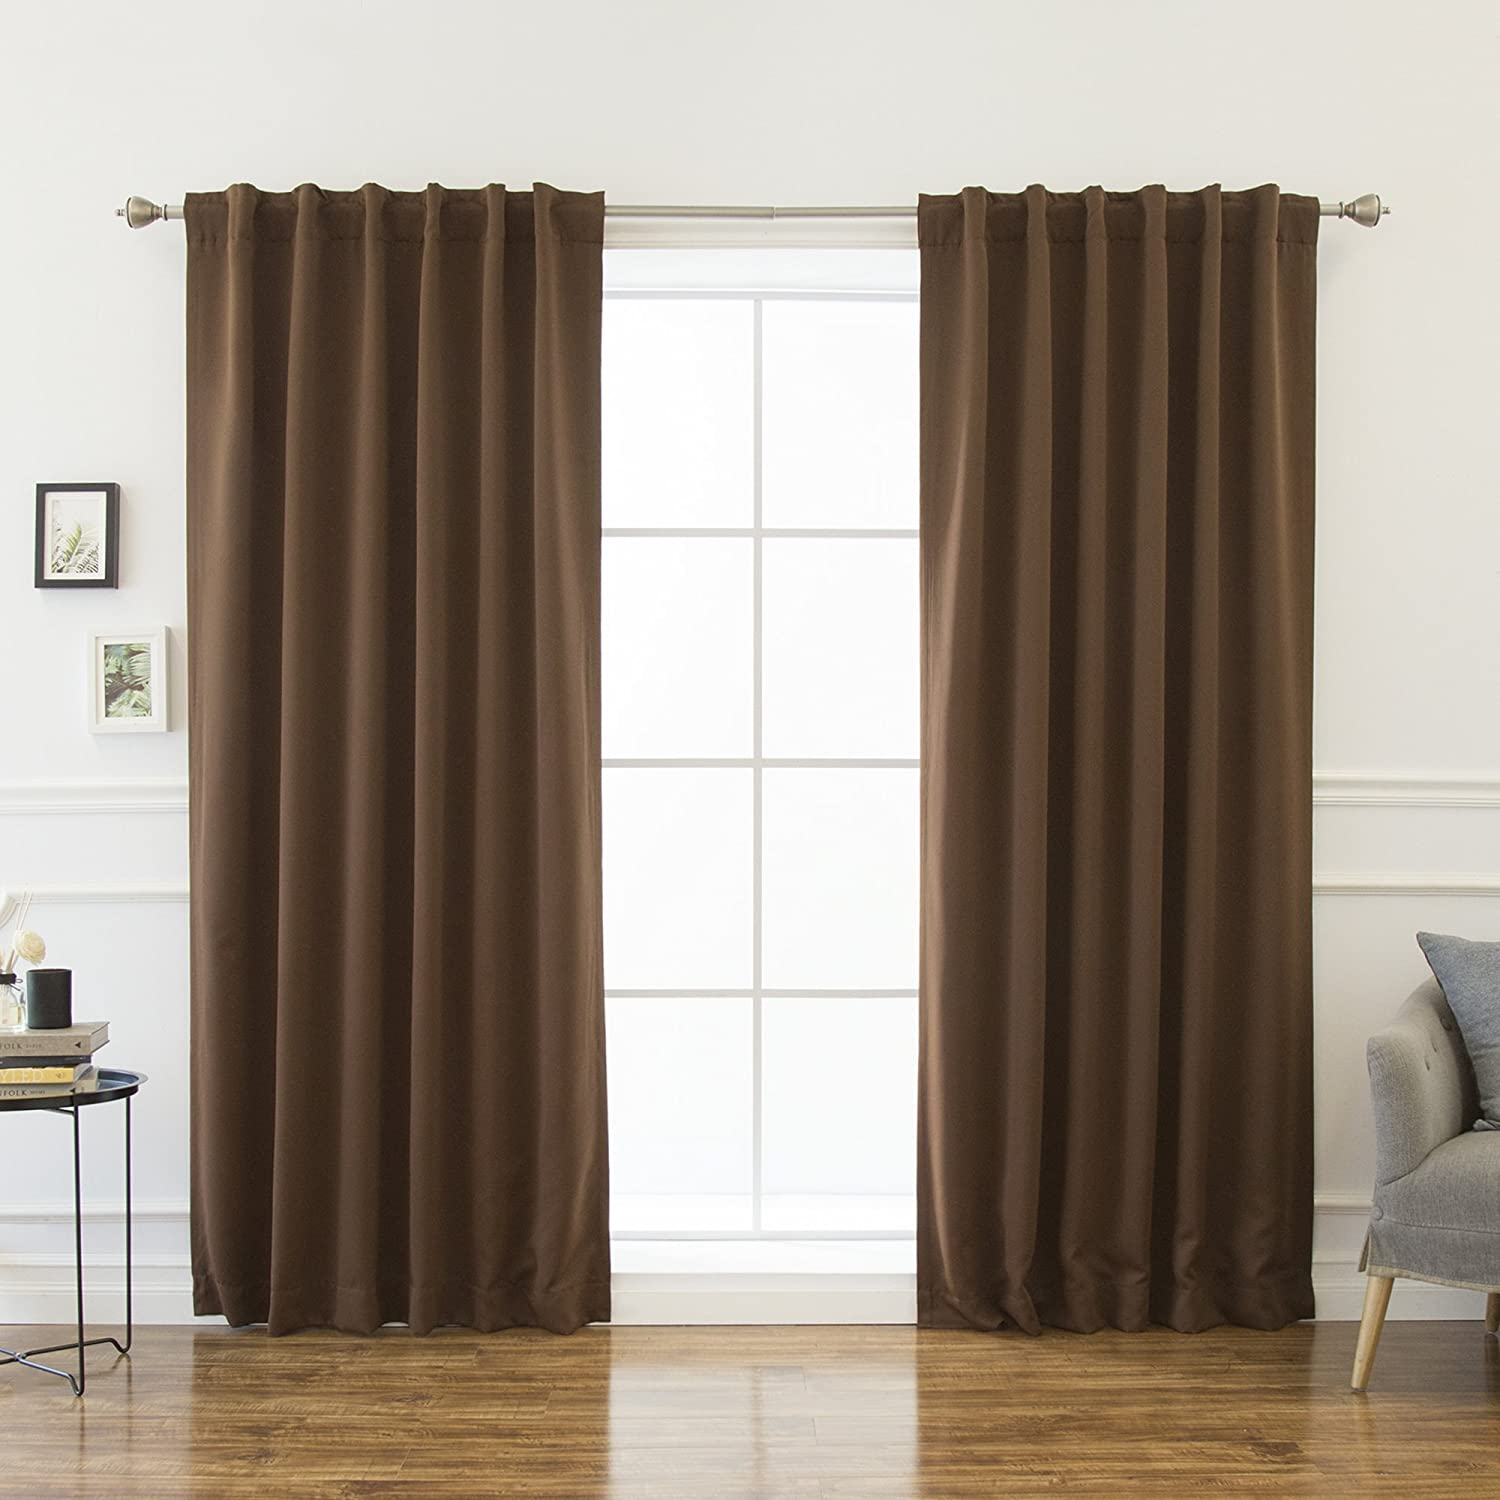 Best Home Fashion Basic Thermal Insulated Blackout Curtains - Back Tab/Rod Pocket Grommet Top - Grey - 52W x 63L No tie back (1 Panel) BEWBU SINGLE-SOLID-63-GREY